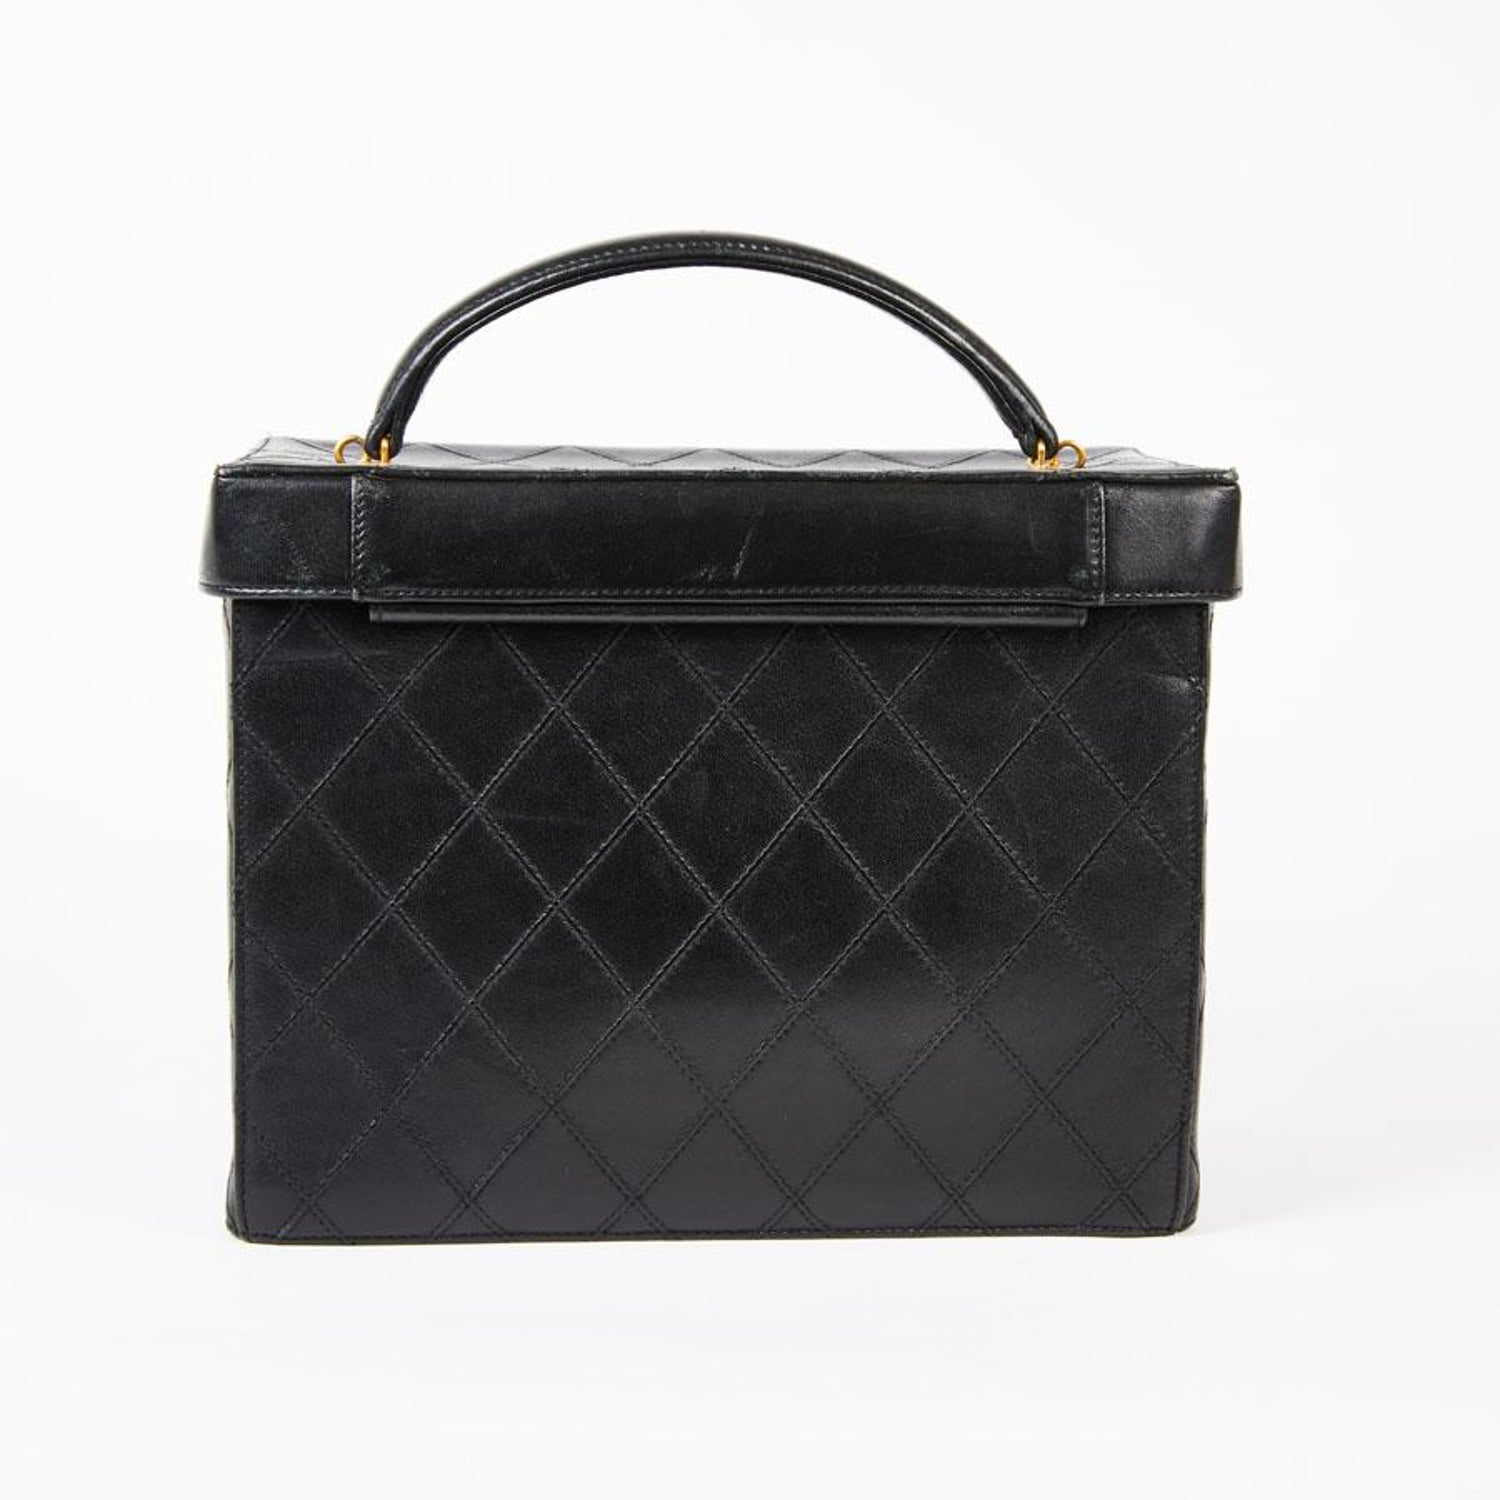 2b991fc487d4 CHANEL Vintage Vanity Case in Black Smooth Quilted Lambskin Leather at  1stdibs